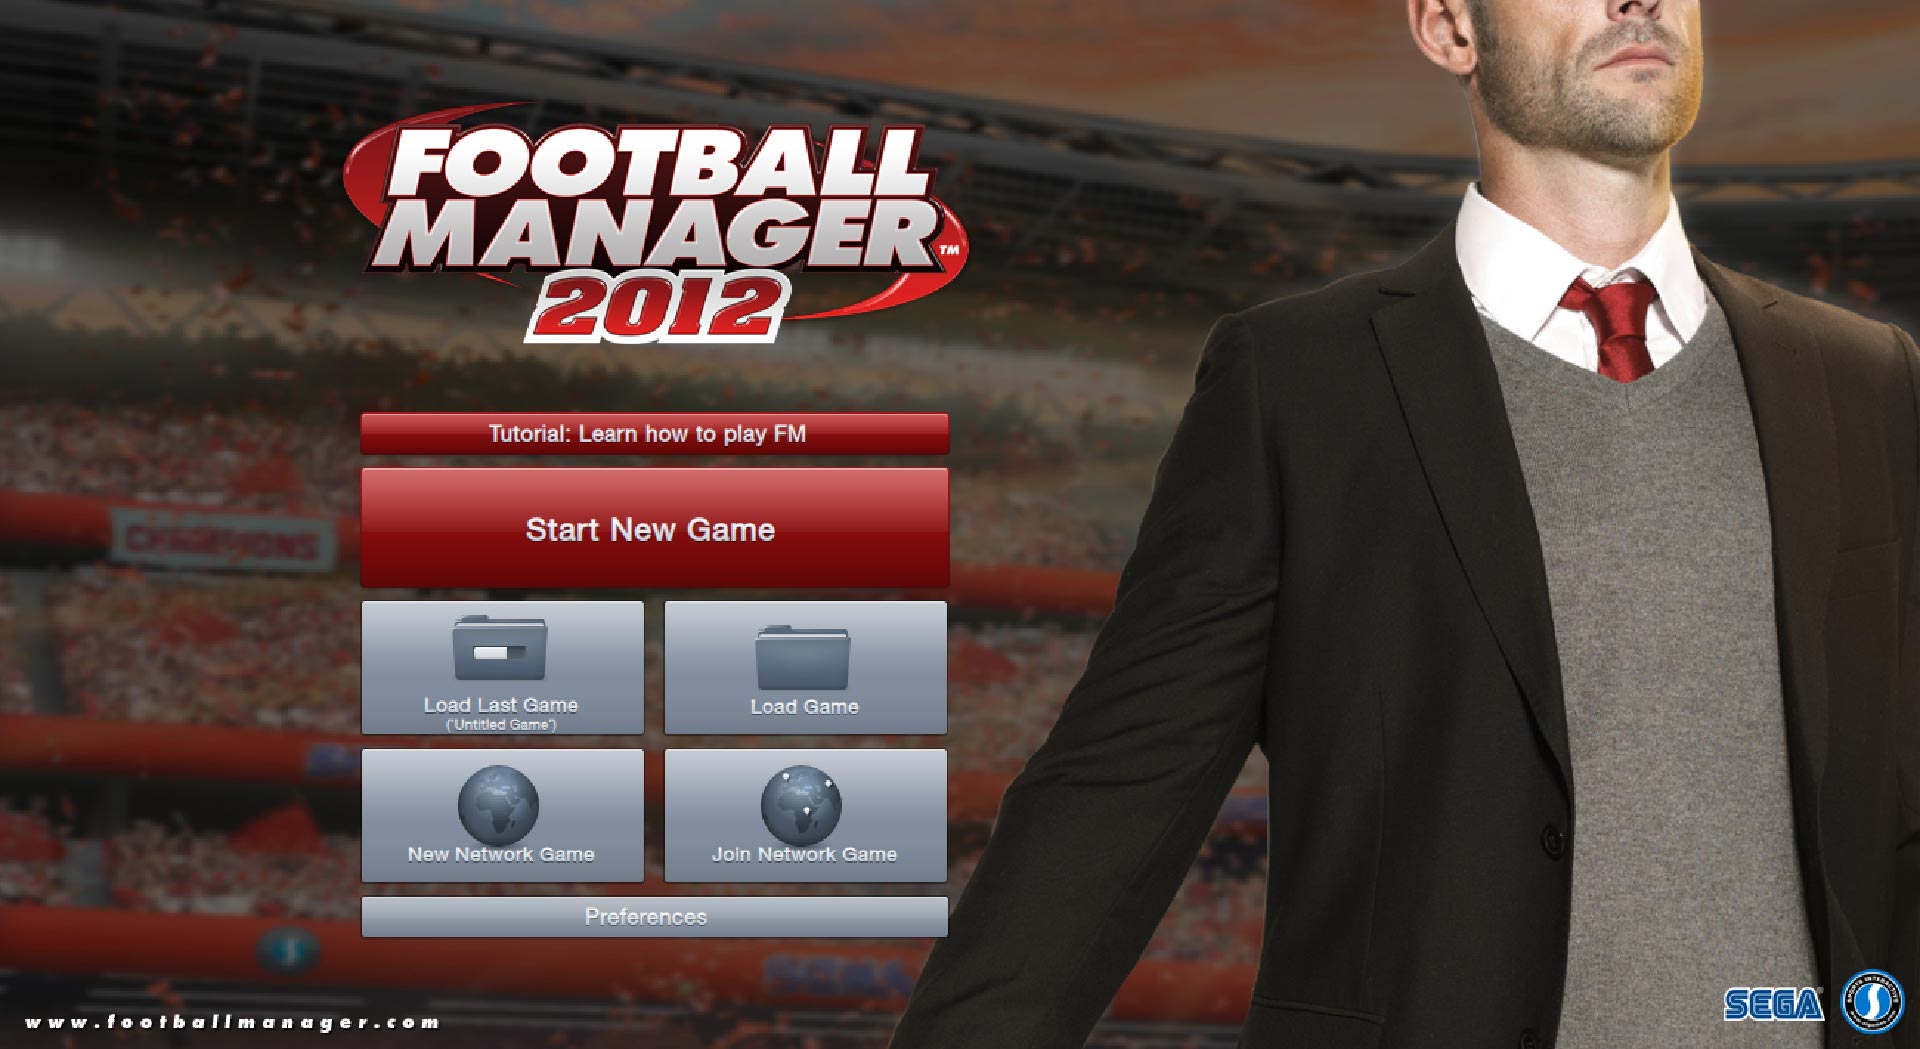 Football Manager 2012 title screen